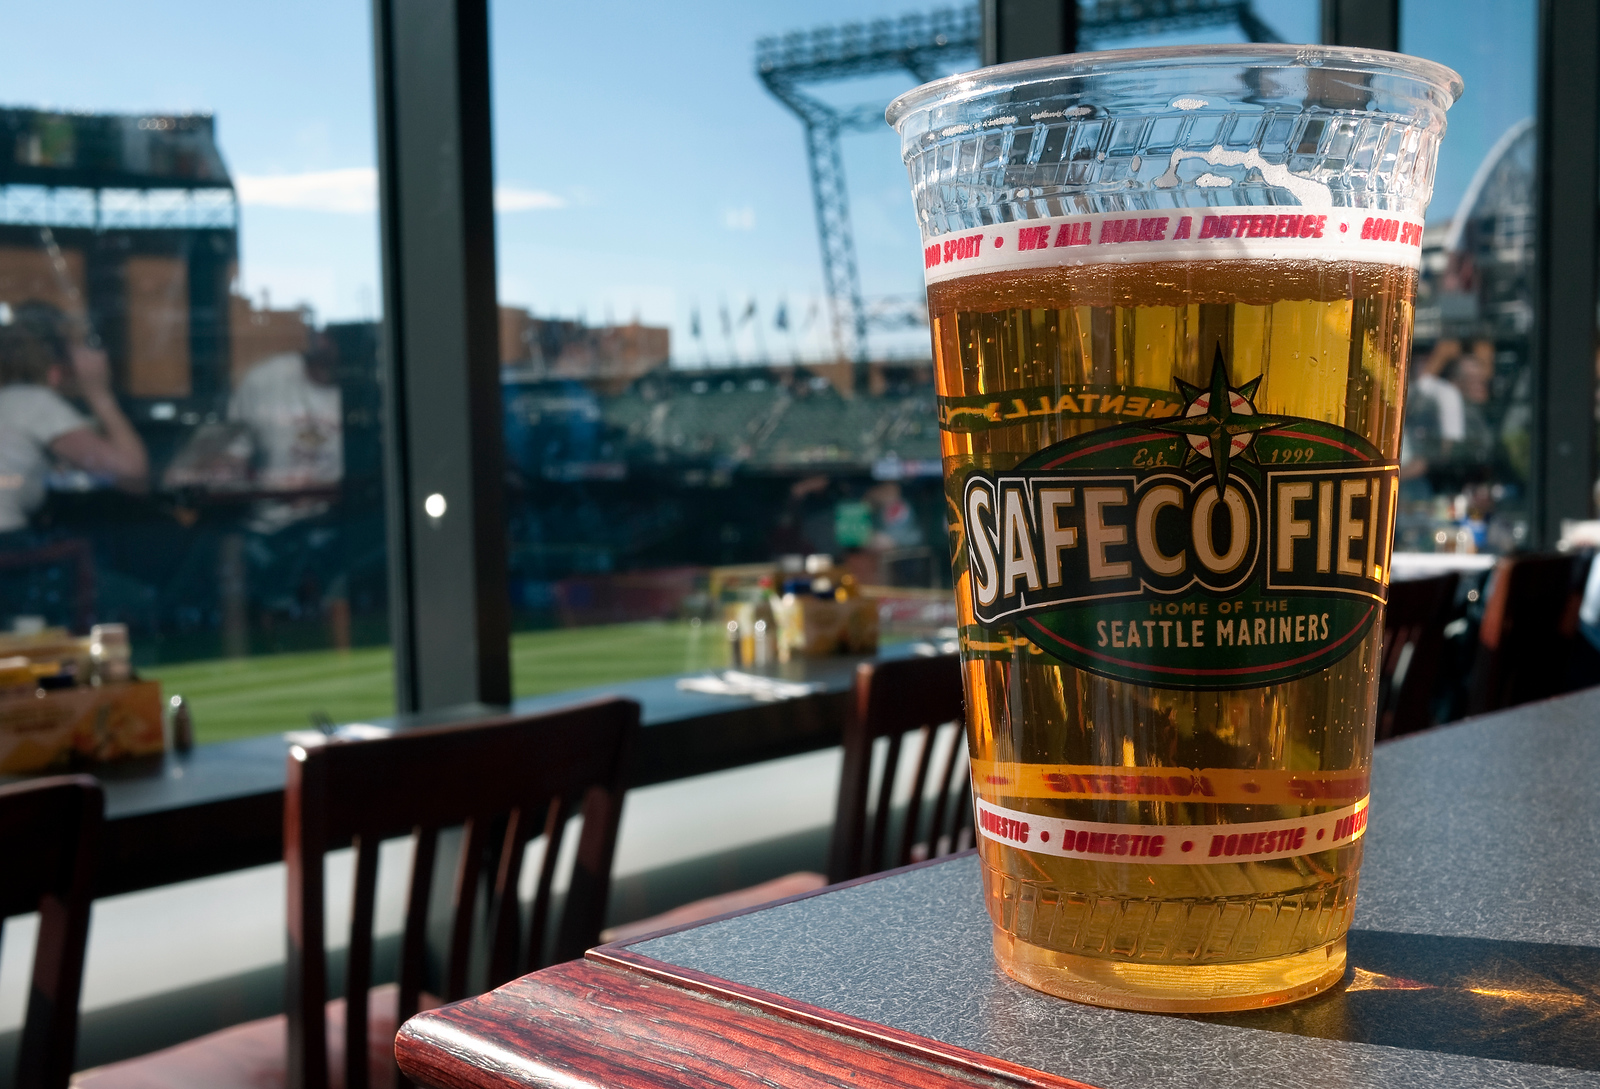 8 May 2010: Enjoying a beer in the Hit It Here Cafe at Safeco Field.